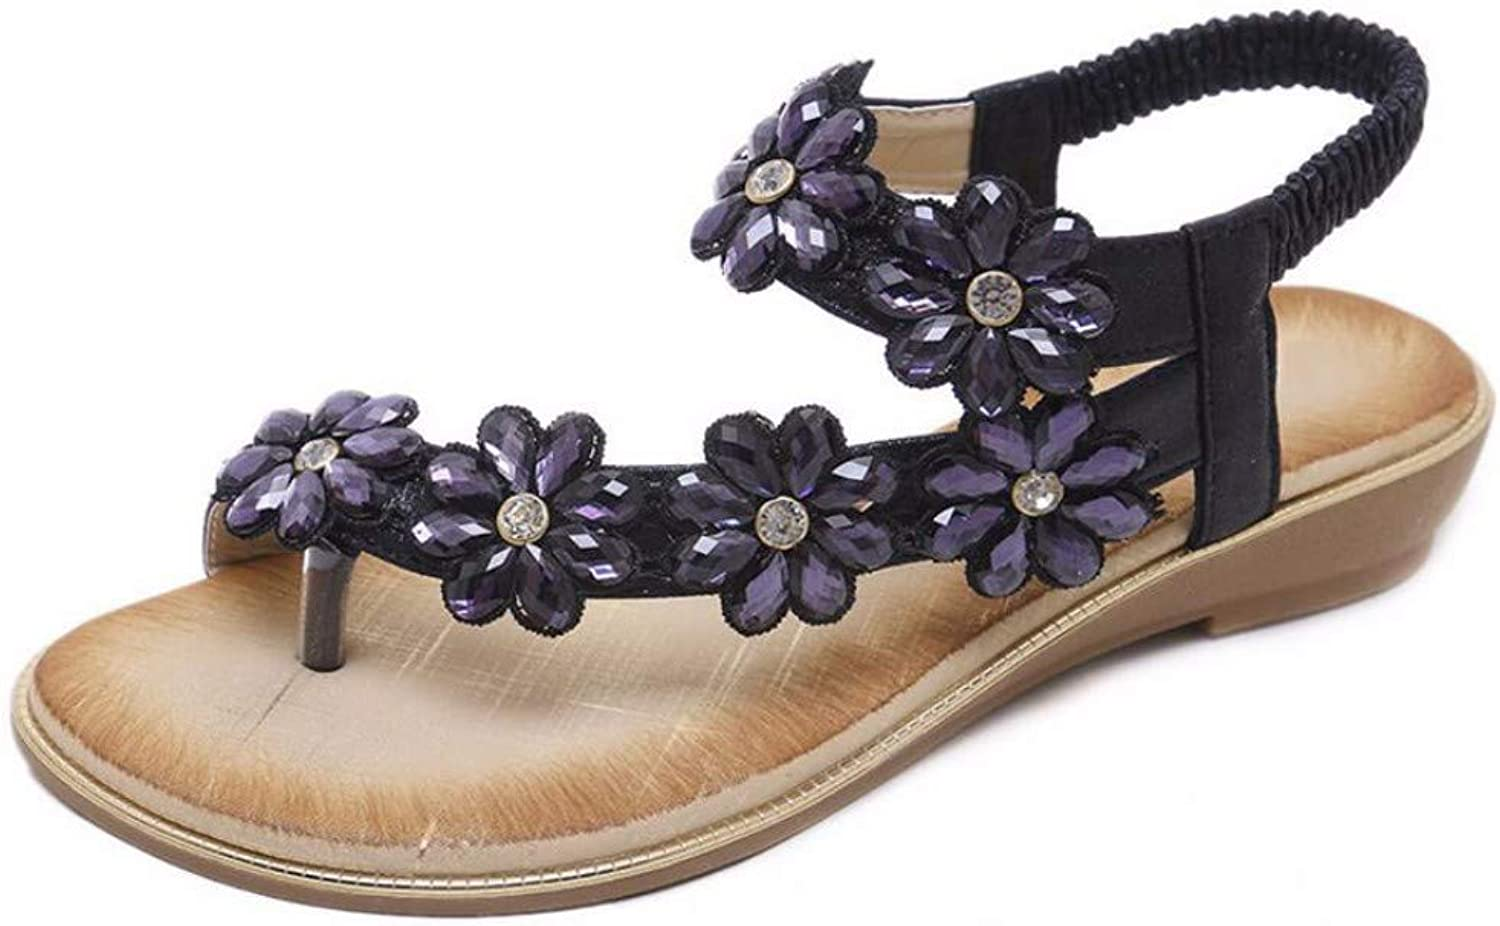 ZPSPZ sandals womens Ladies Sandals, Open Toes, Toes, Flowers, Water Drills, Bohemian Large Comfortable Flat shoes, Beach shoes